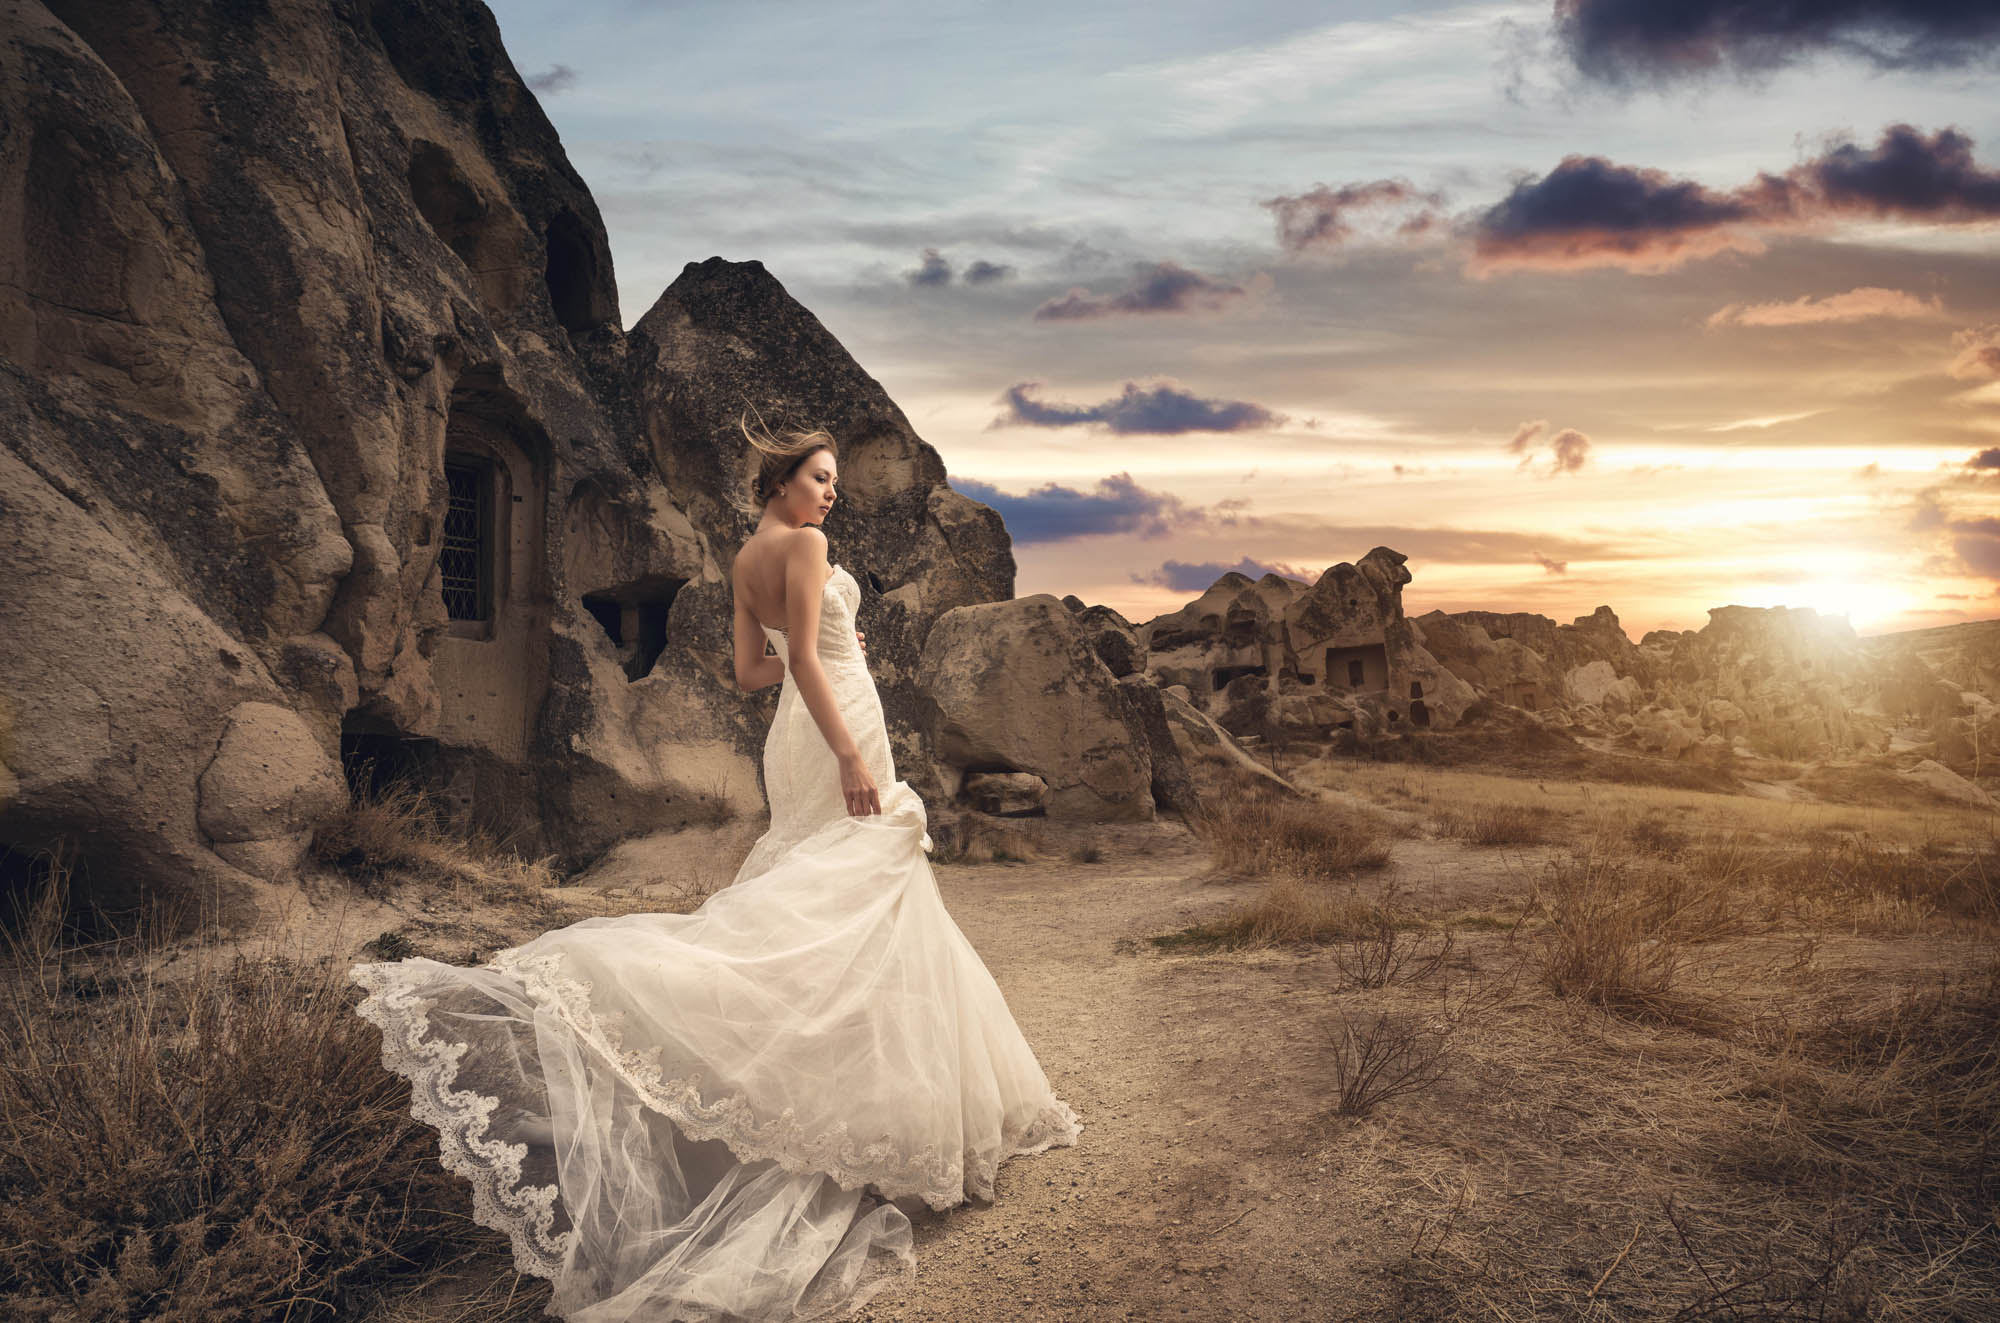 Bride in lace and tulle trumpet gown posing in rocky desert landscape, by CM Leung